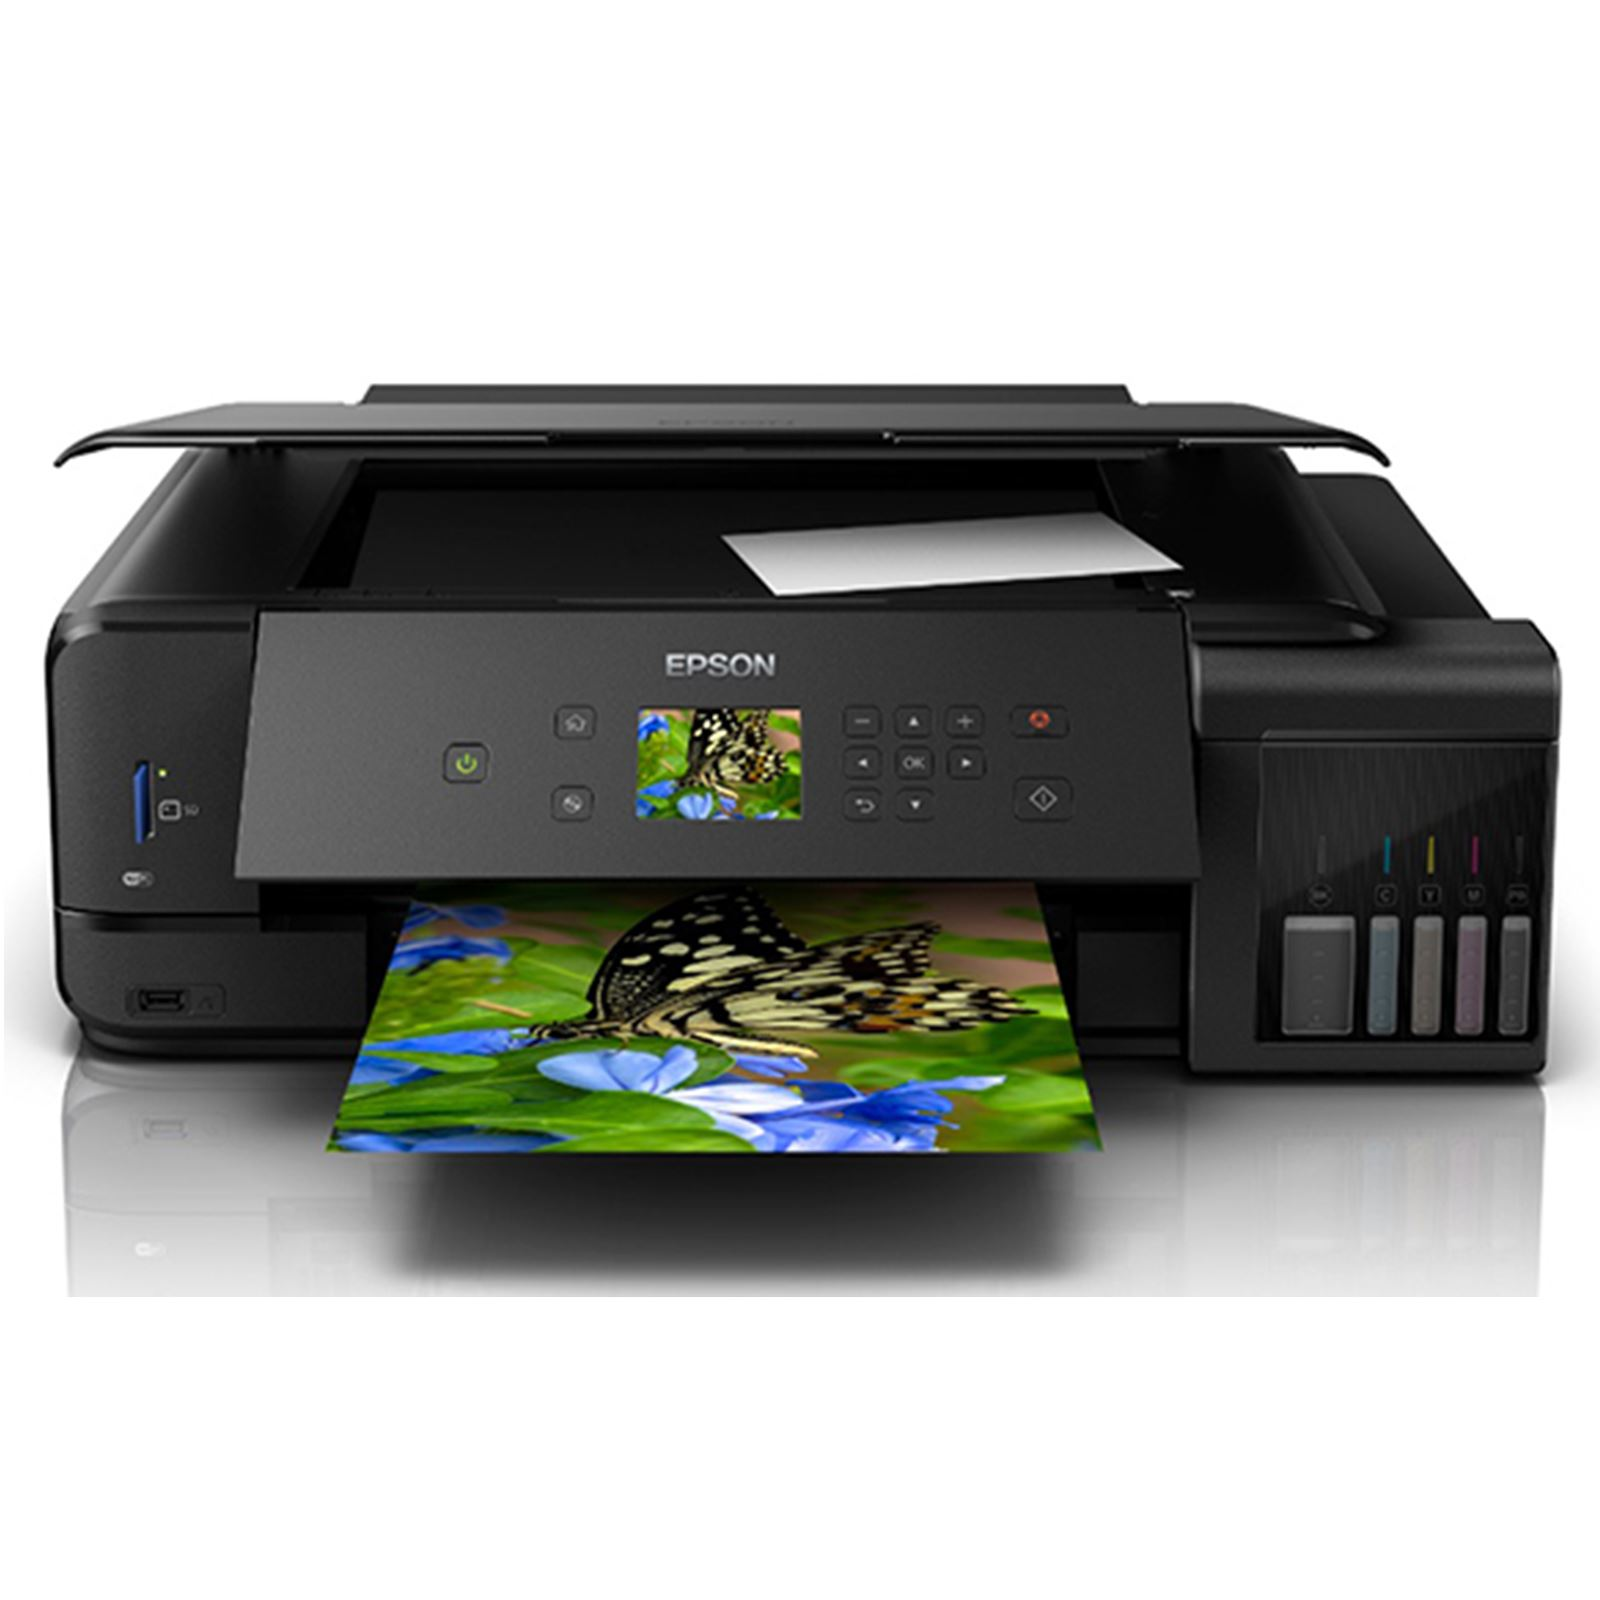 Image of Epson Expression A3 ET-7750 AIO Eco Tank